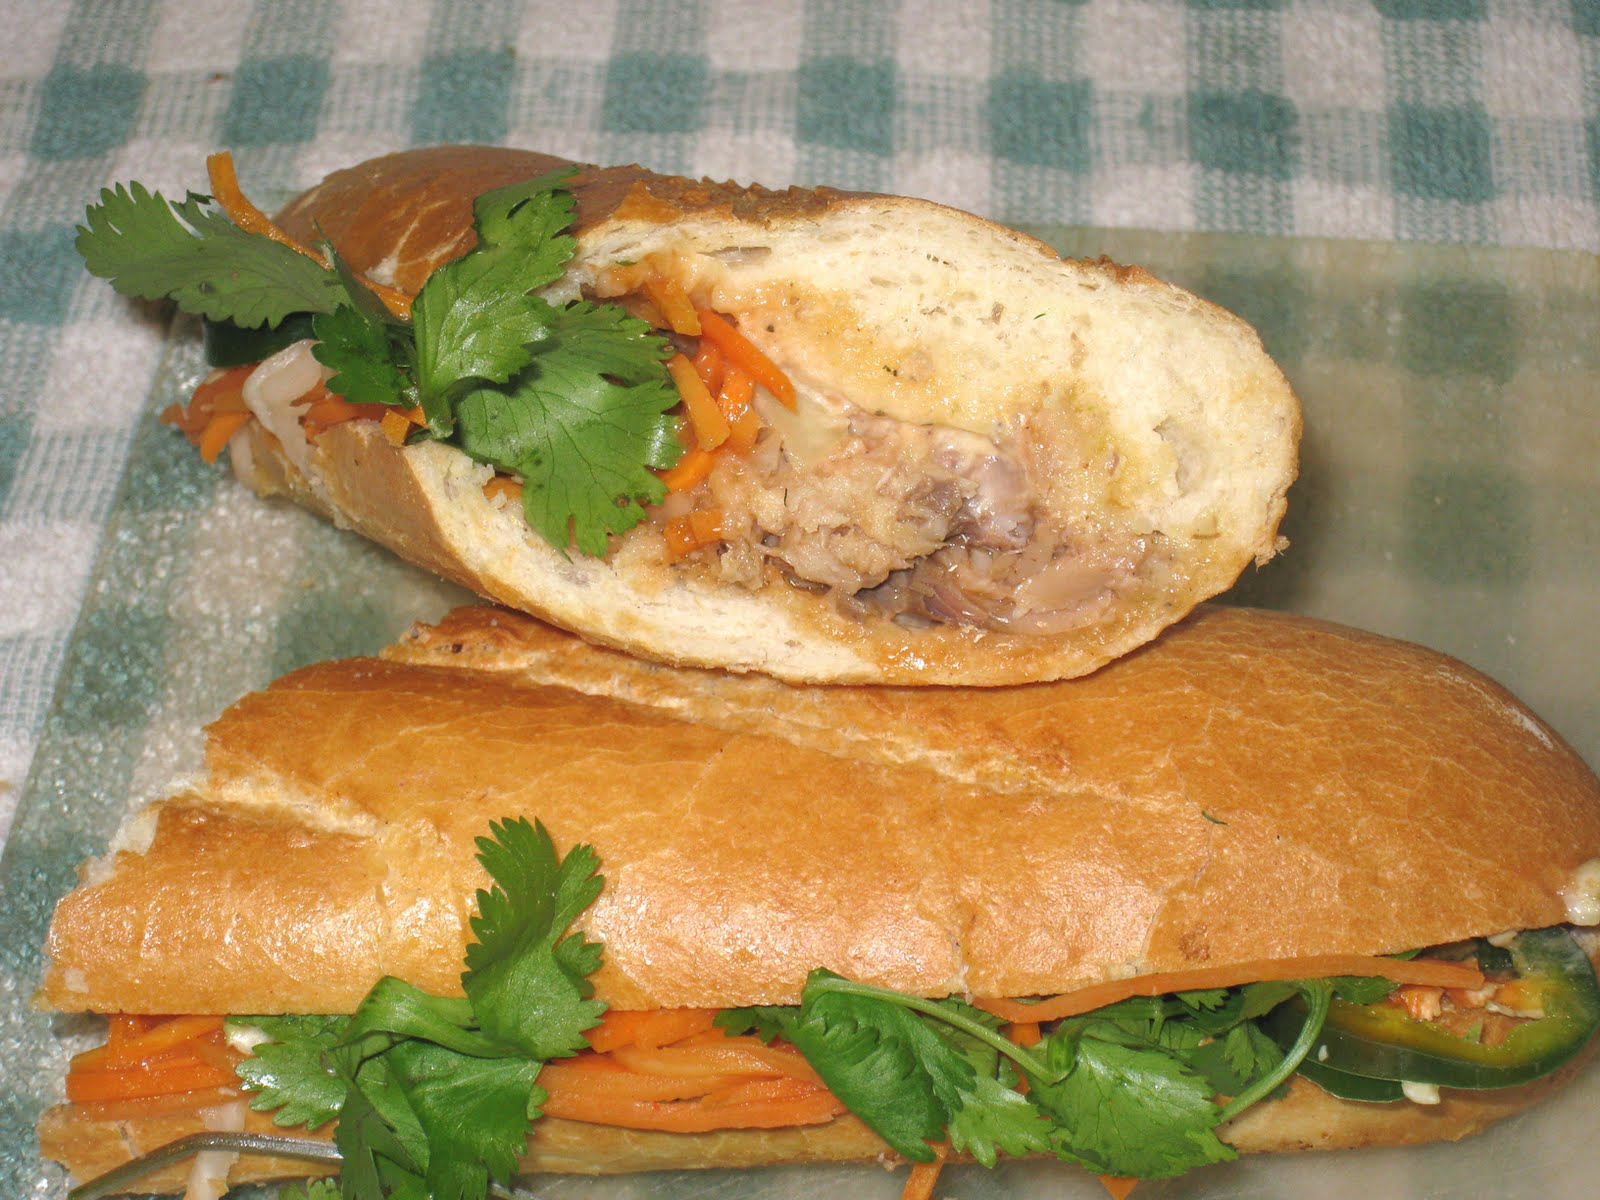 banh mi banh mi hot dogs mi banh mi hot dogs canned sardine banh mi i ...